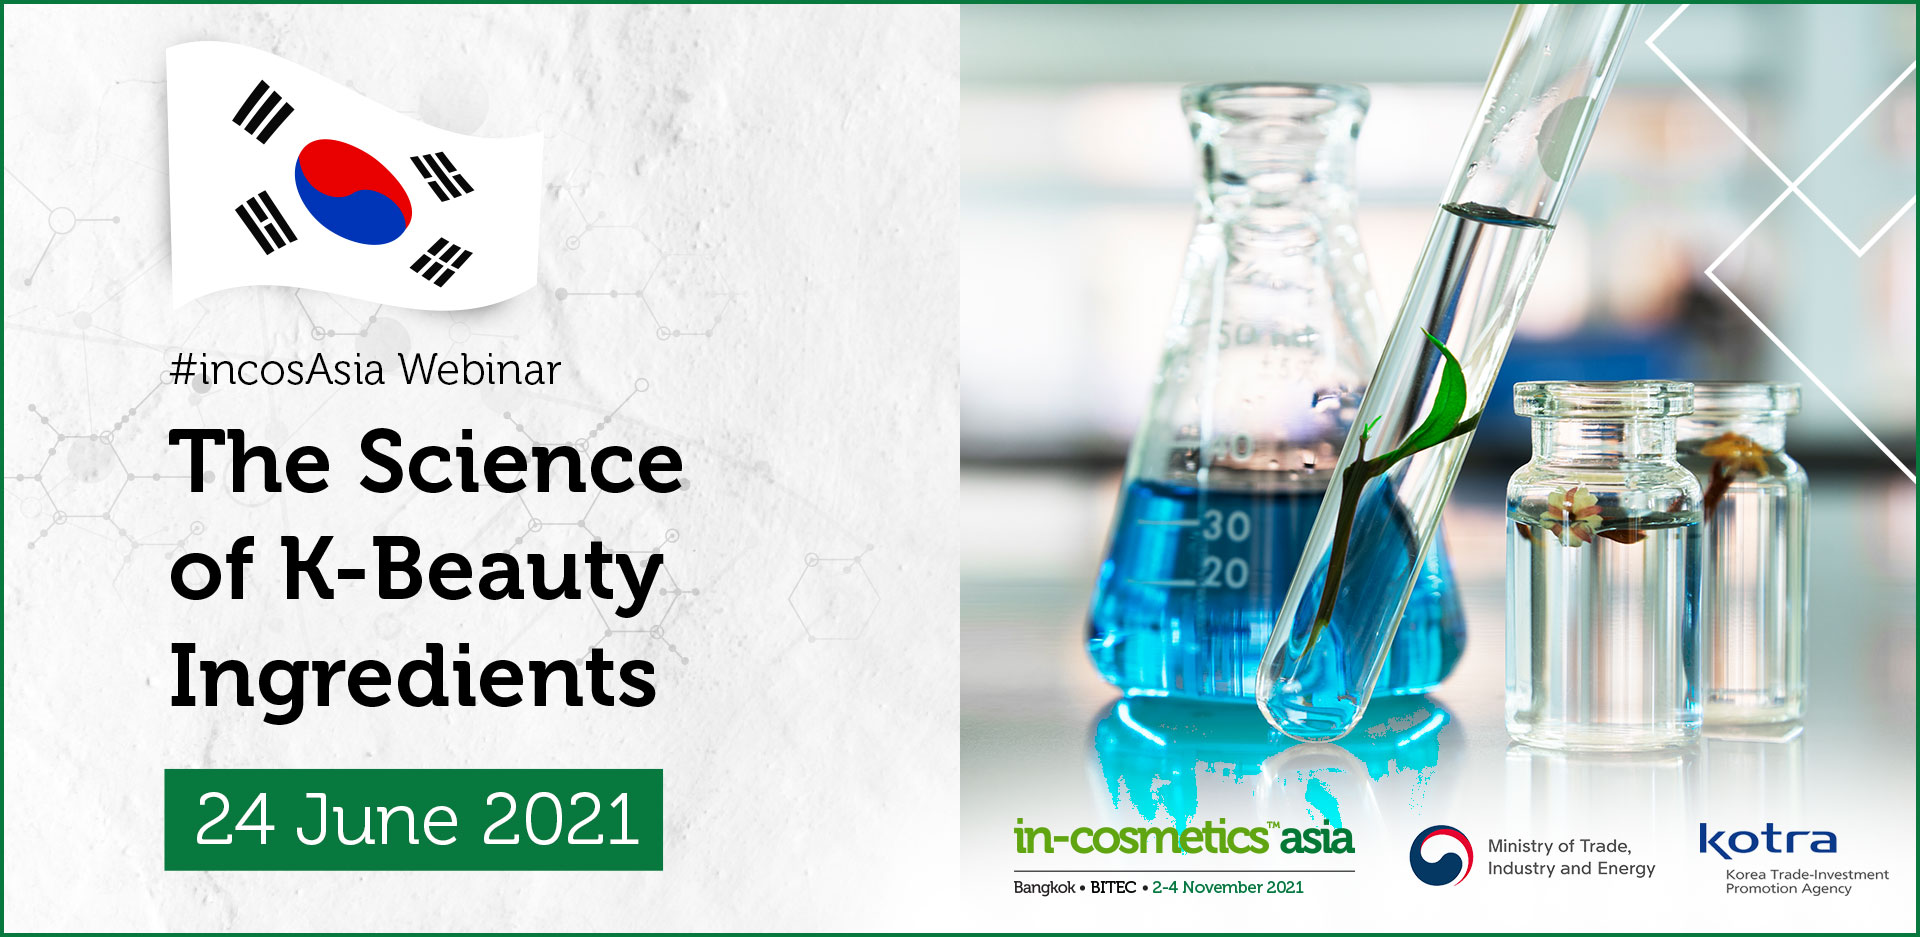 in-cosmetics Discover featured image